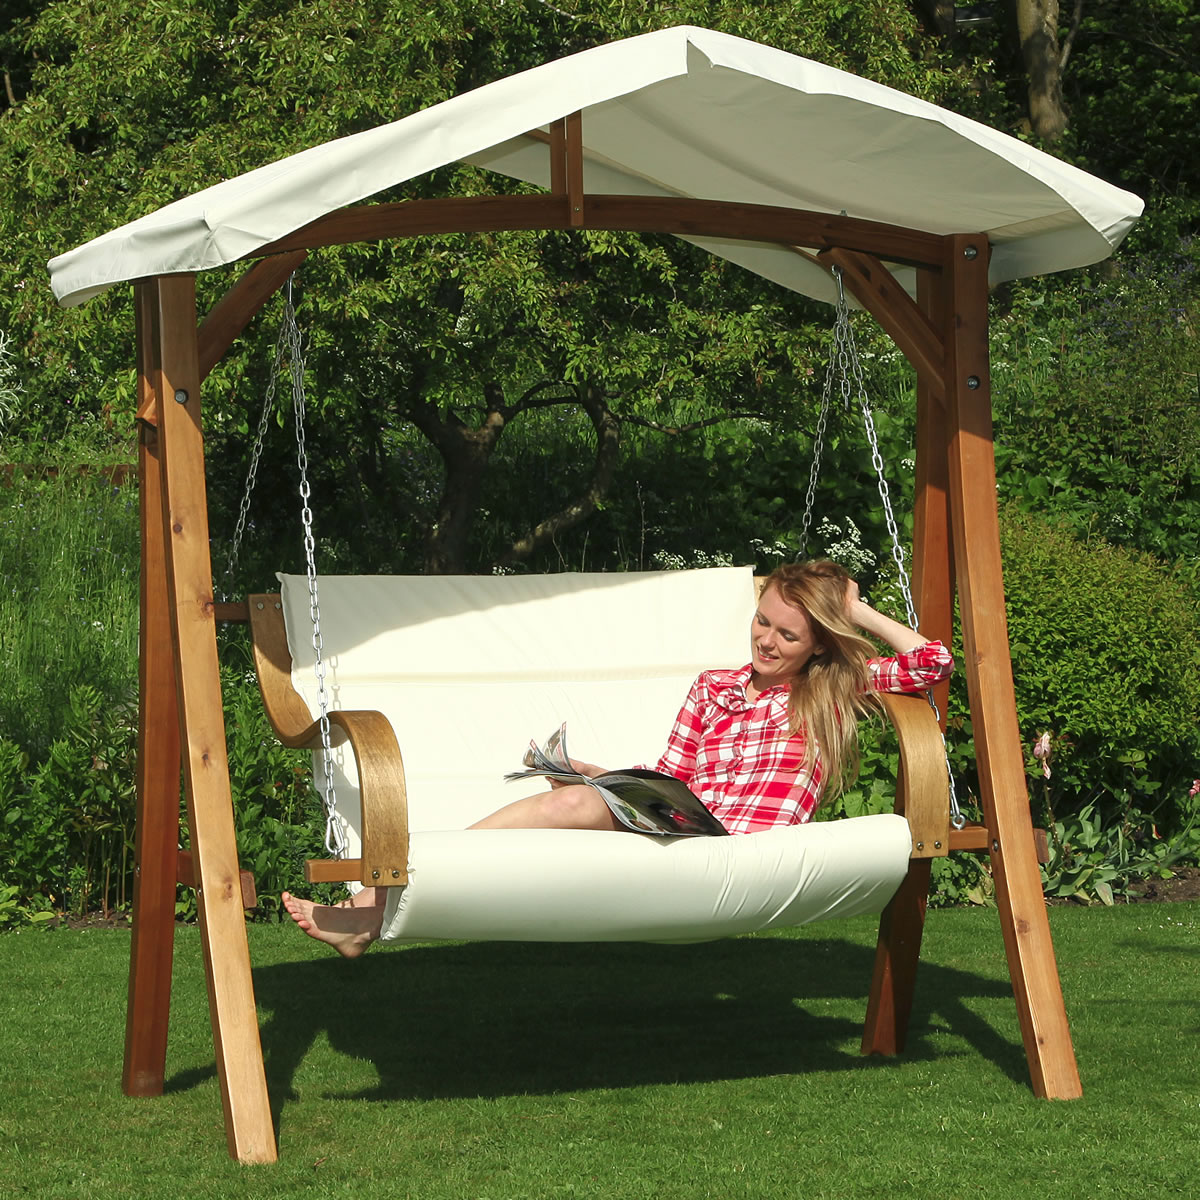 Medium image of garden swing chair 2 seater garden swing chairs modern patio outdoor